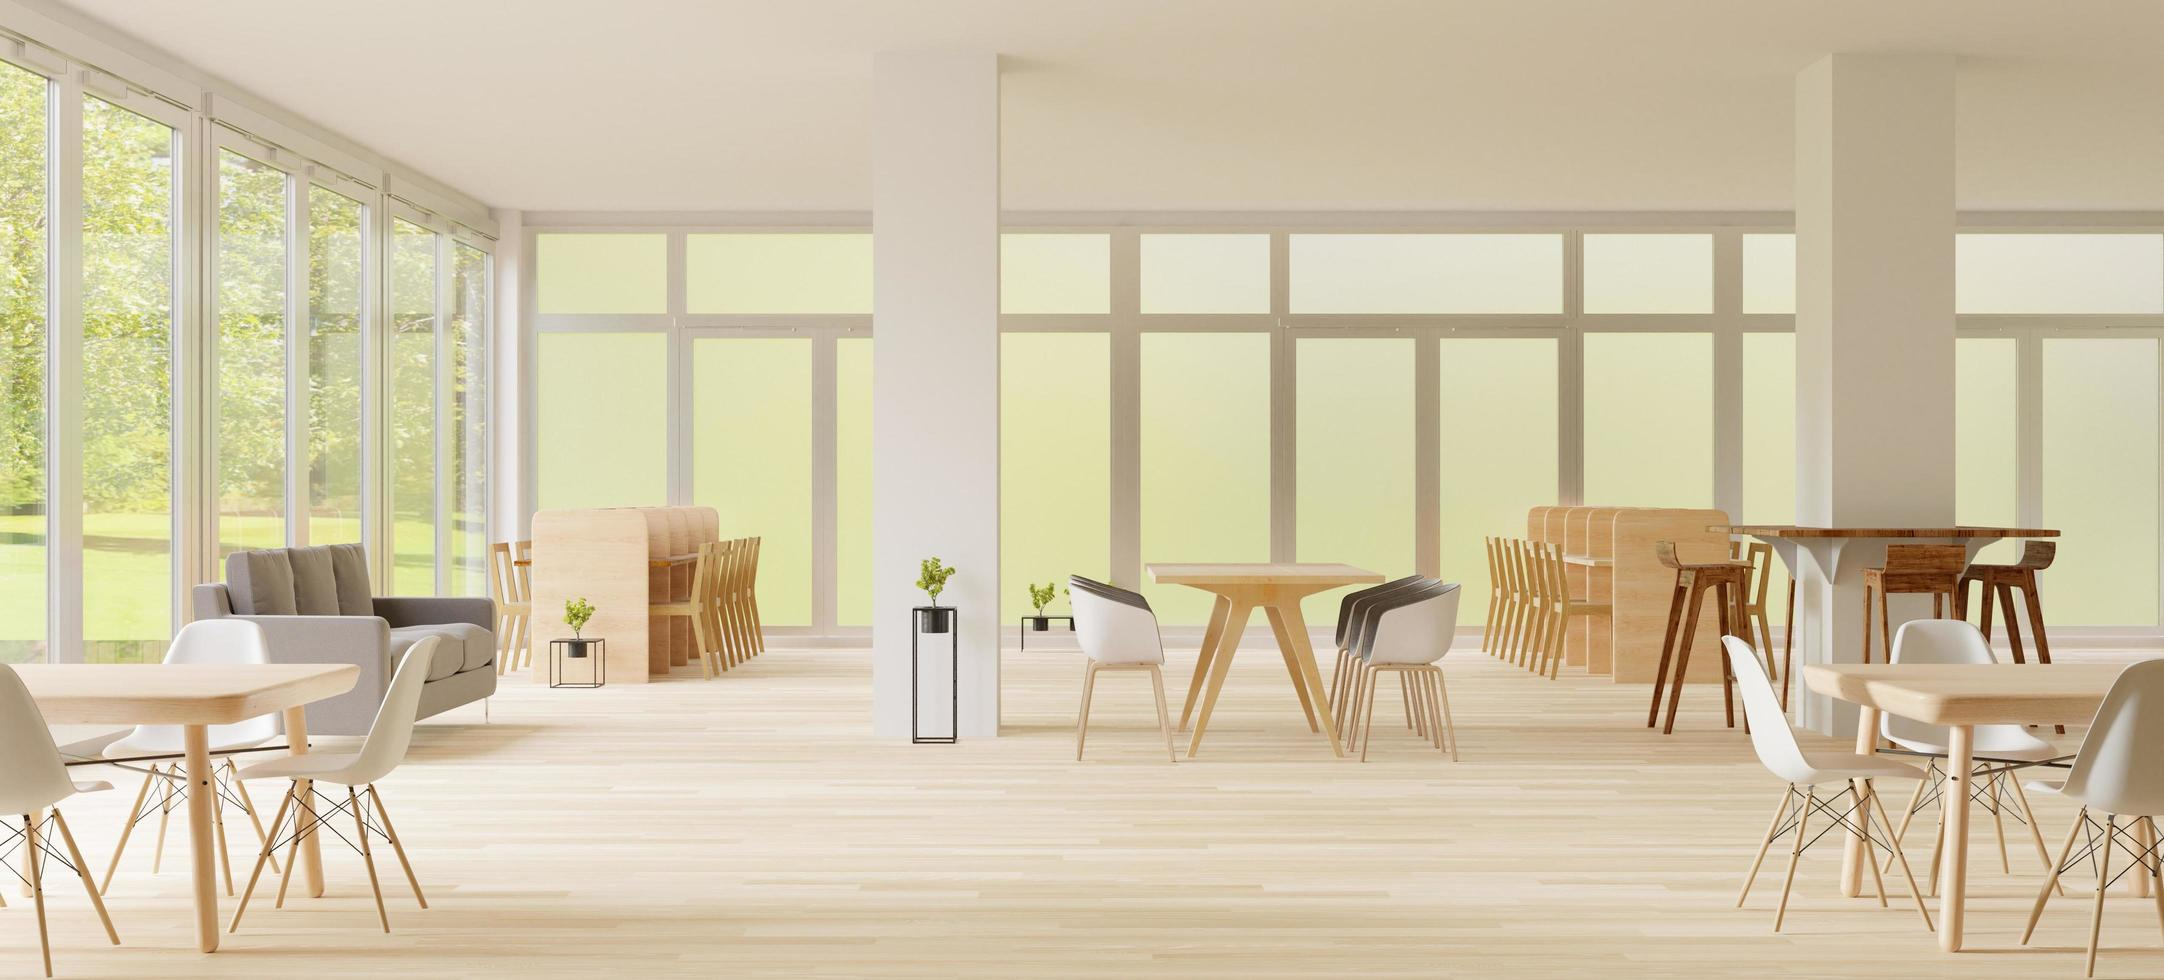 Co-working space, open concept 3D render photo